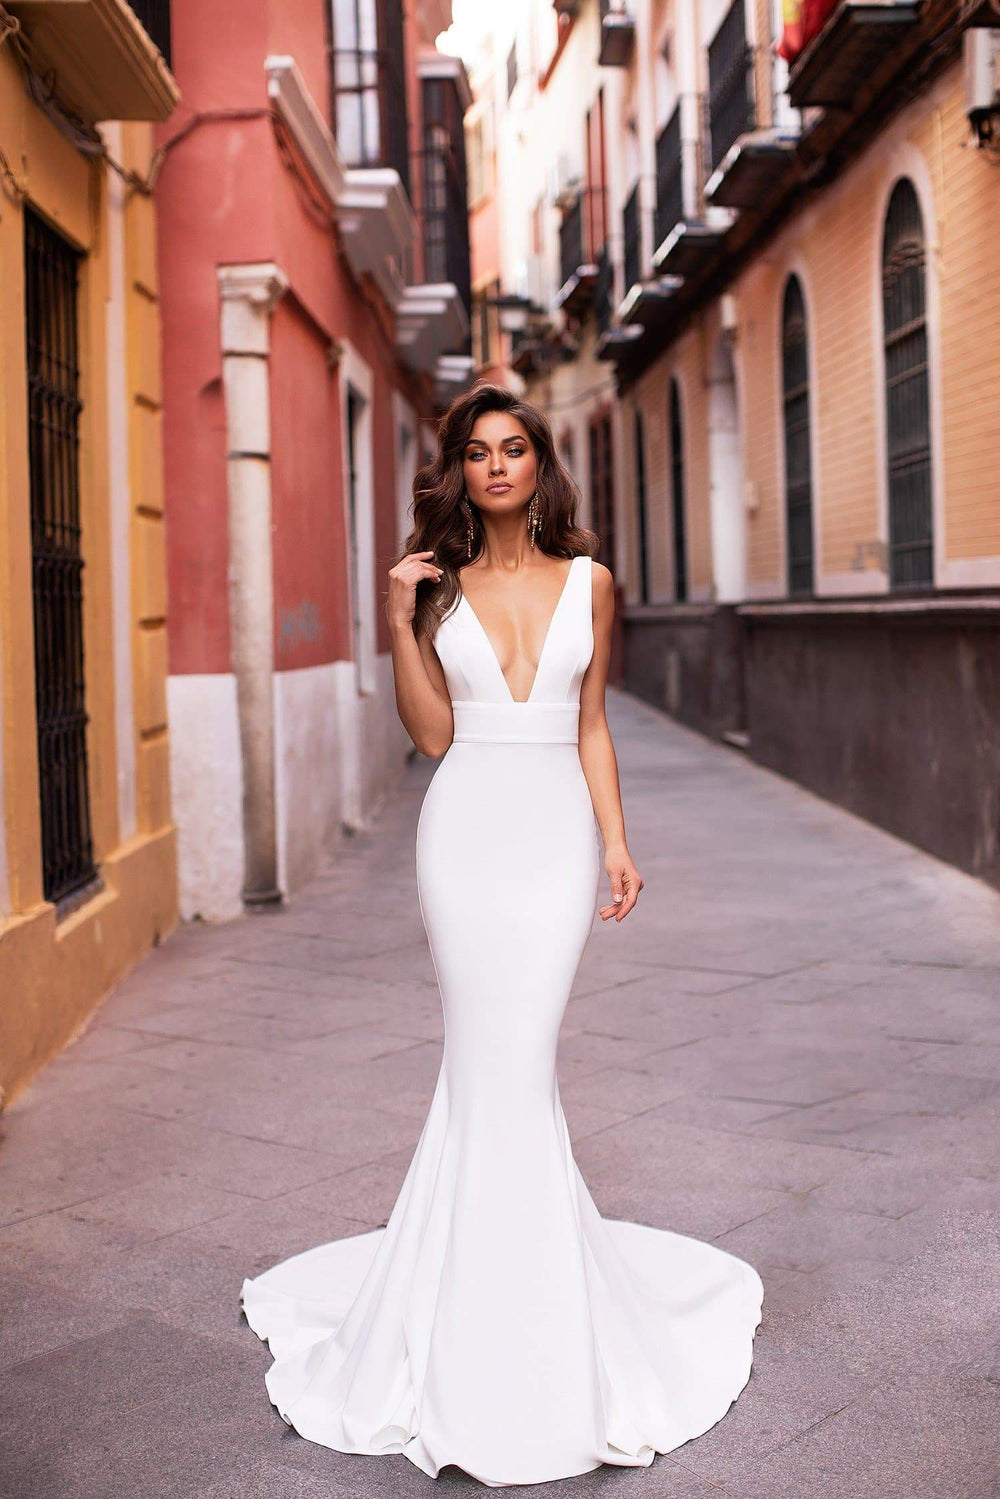 bf6abdc5fd46e2 Jovana - White Mermaid Gown with Plunge Neckline & Long Train